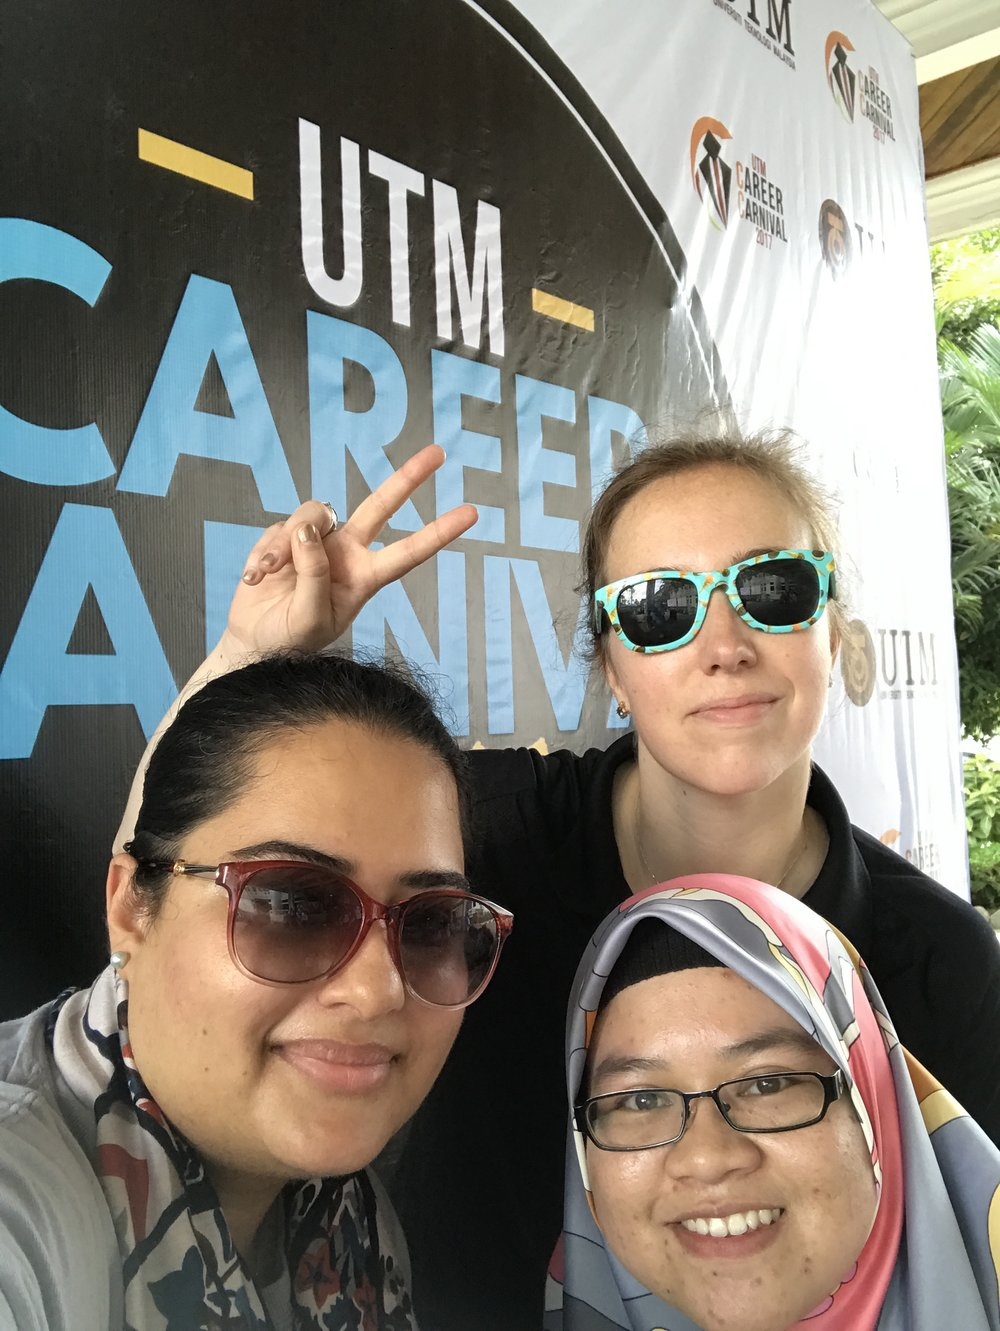 Asian peace at the career carnival.